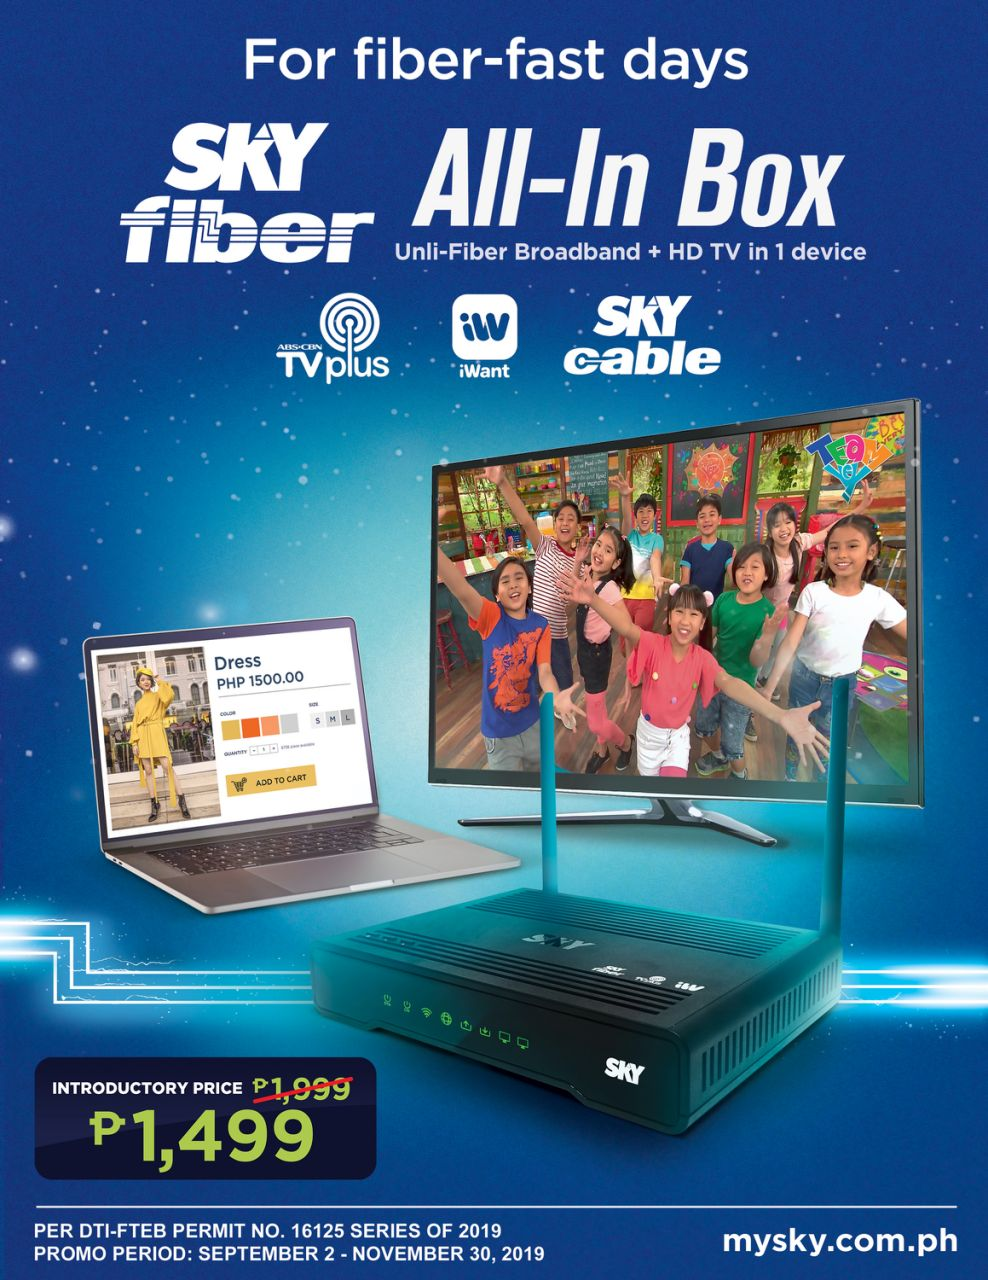 For only P1,499 you can have Skyfiber and cable in one